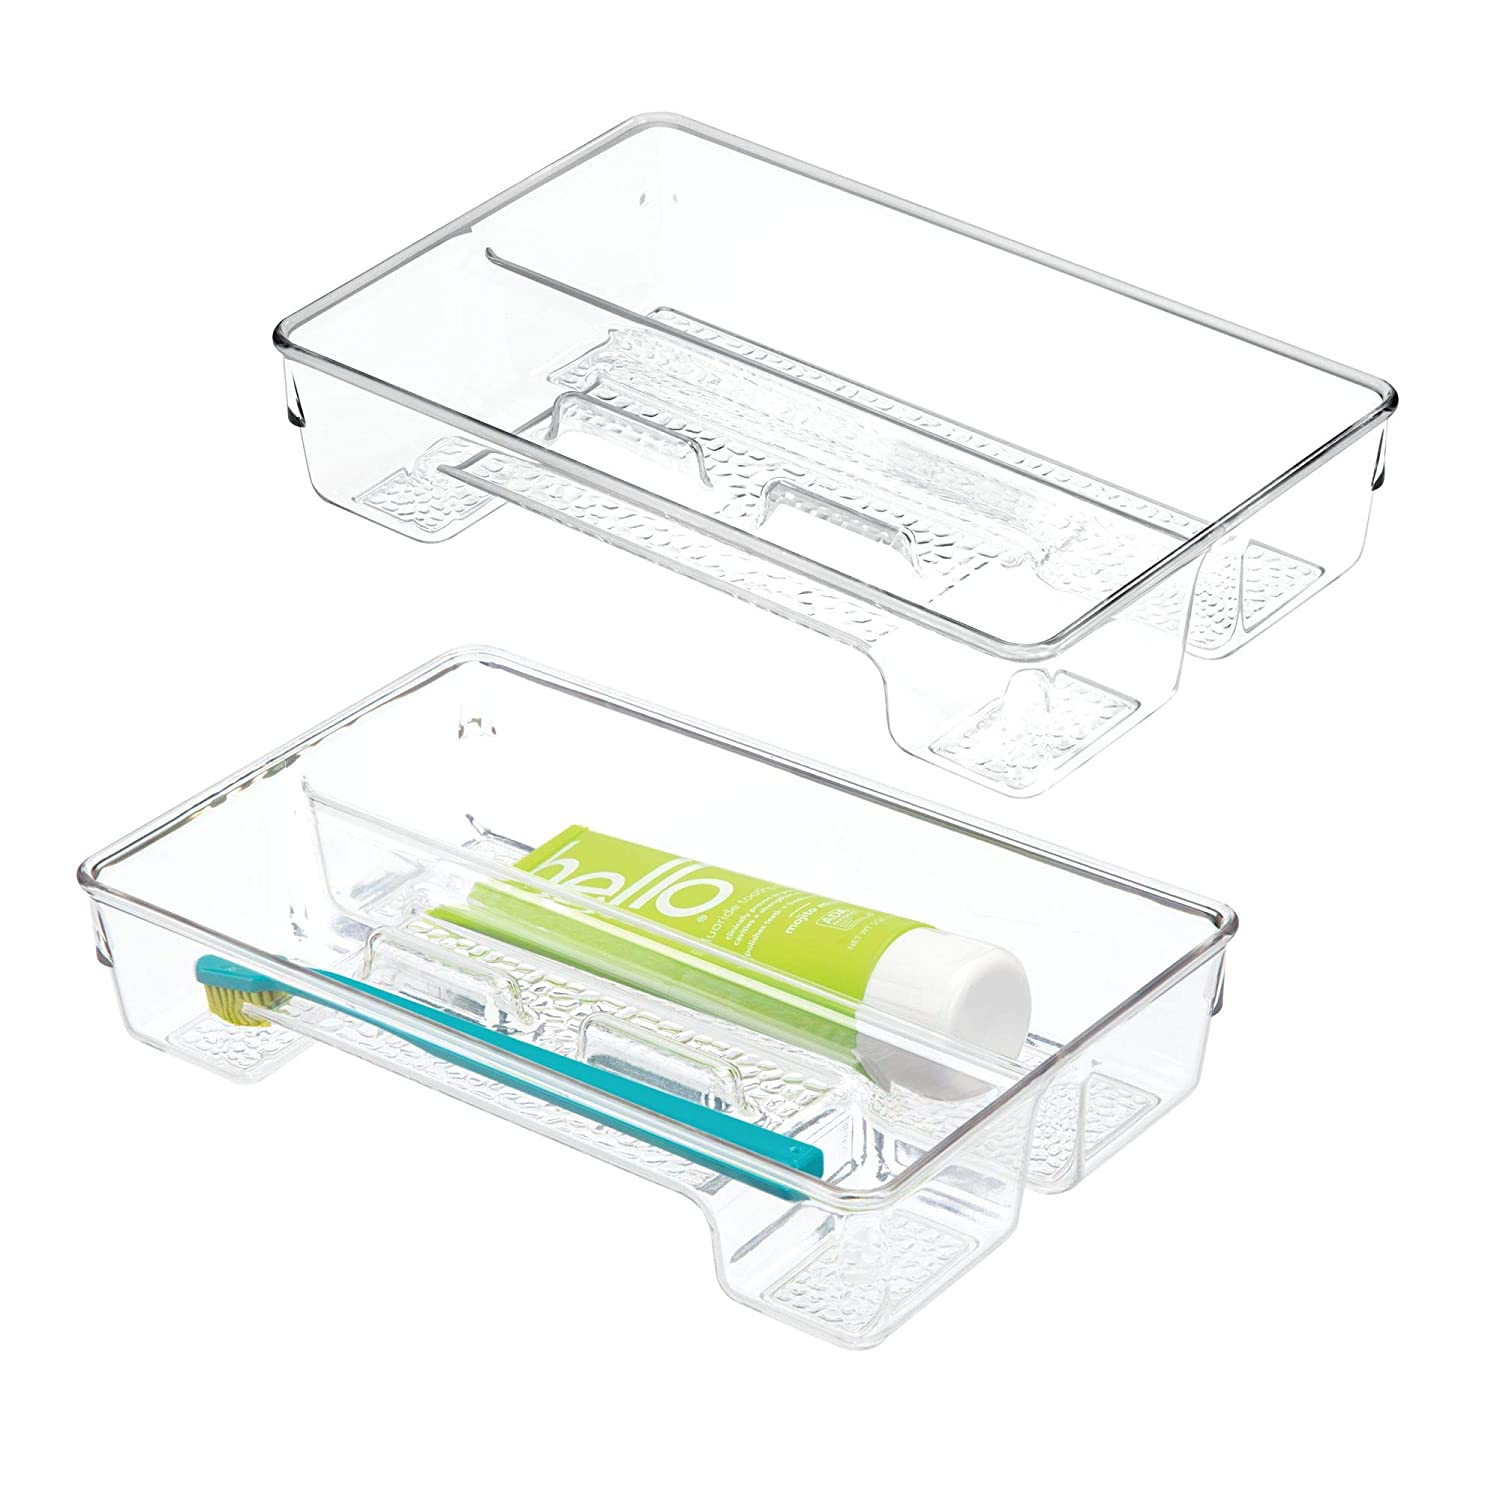 mDesign Bathroom Counter Vanity Storage Drawer Organizer Holder for Spin and Toothbrushes, Toothpaste Floss and Dental Supplies - Set of 2, Clear MetroDecor 4336939647